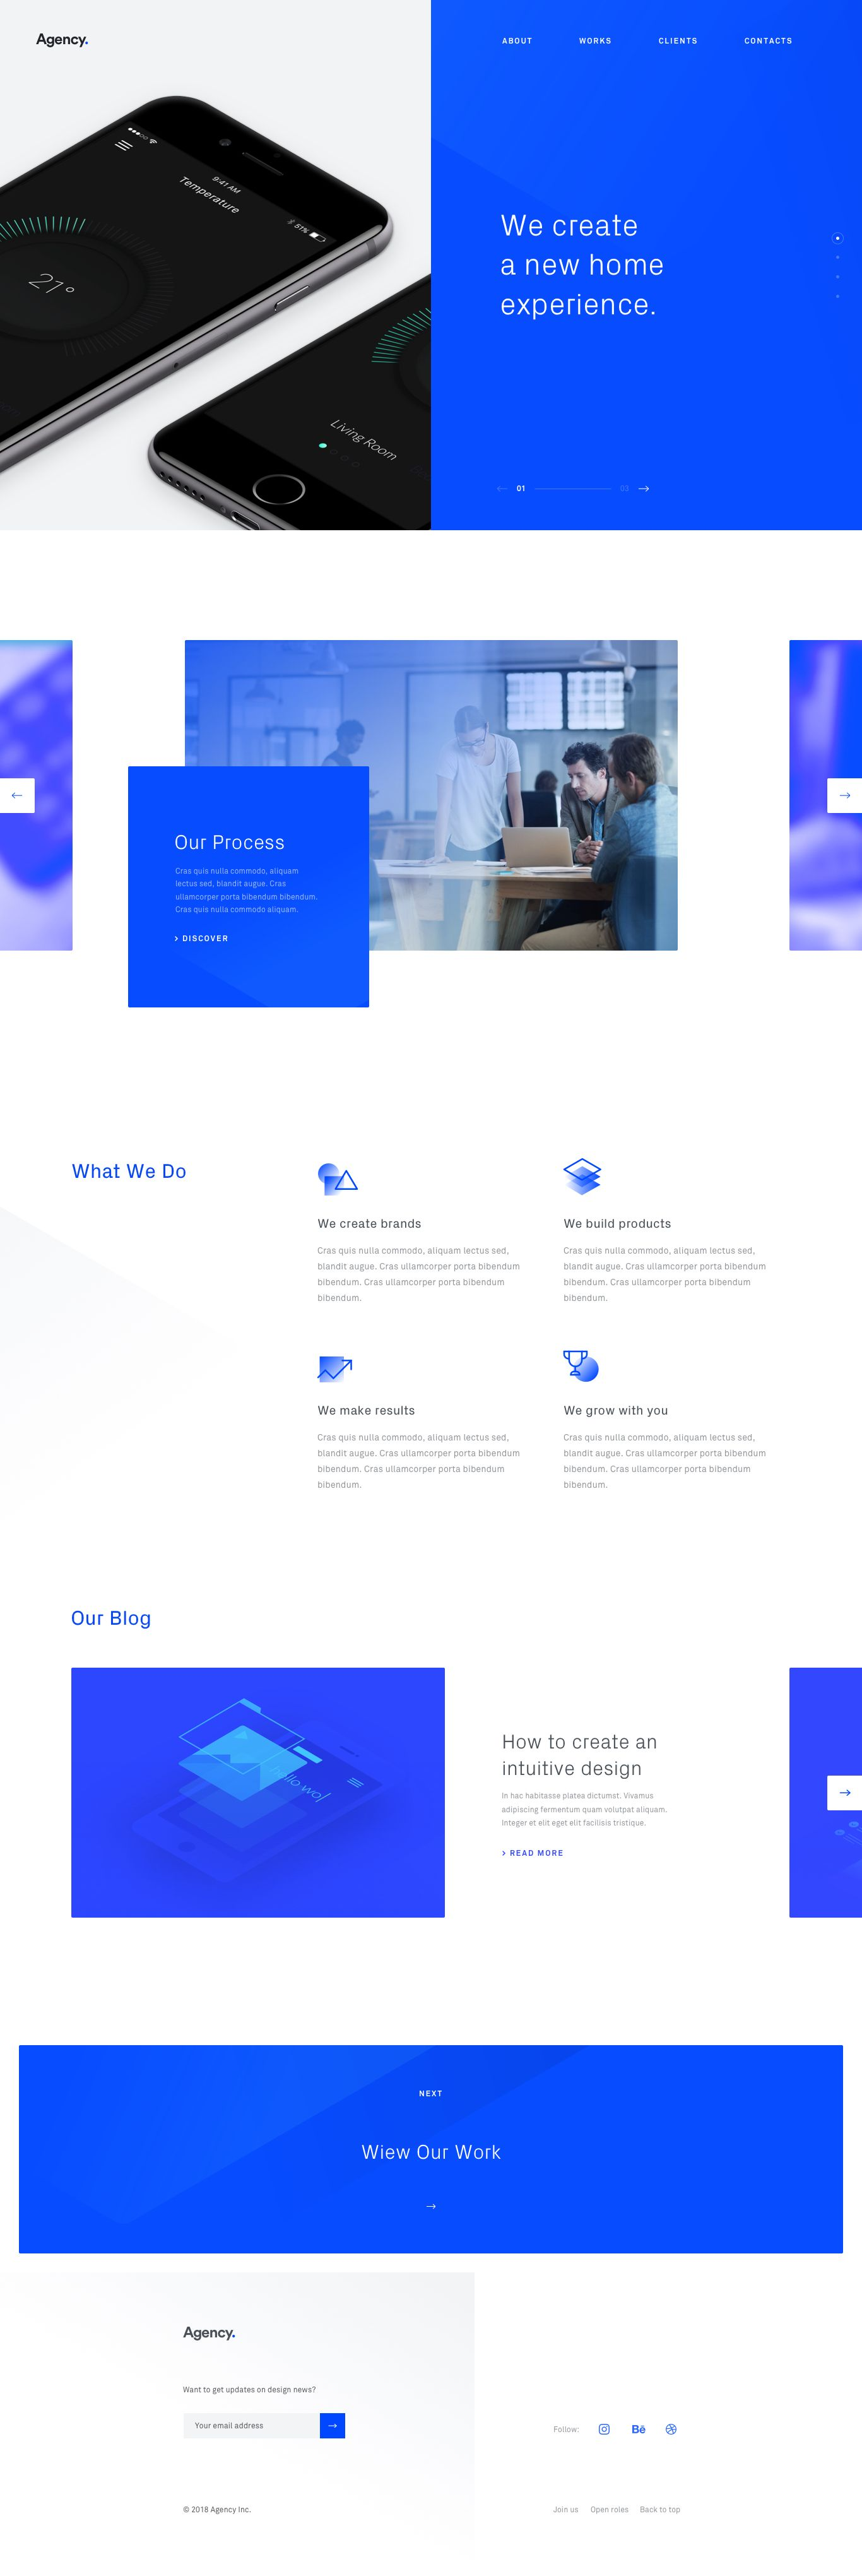 Inspiration Photo And Text Box Layering Clean Web Design Agency Website Design Website Design